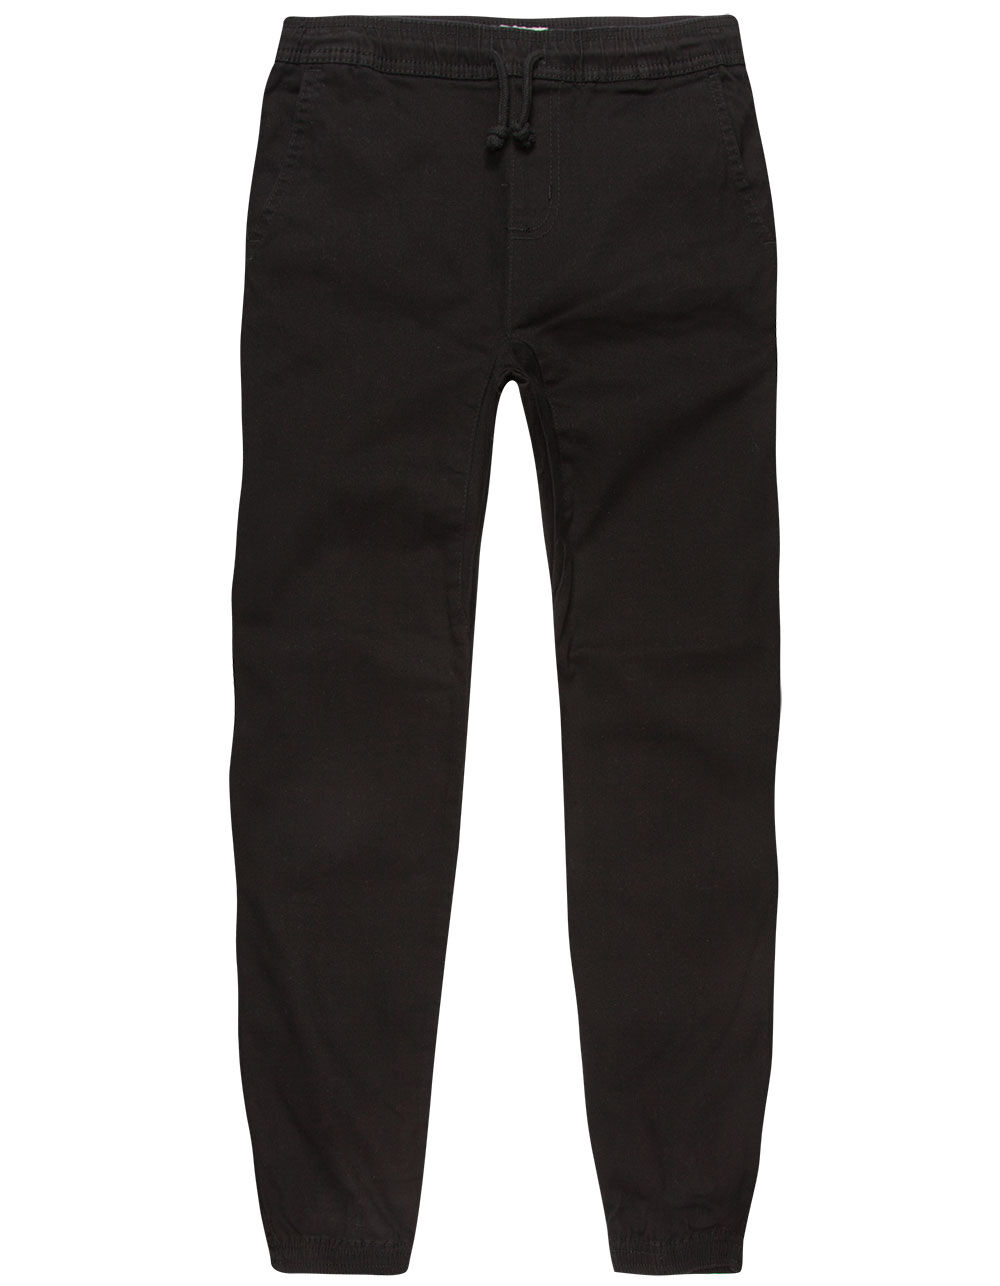 Image of CHARLES AND A HALF BOYS TWILL JOGGER PANTS